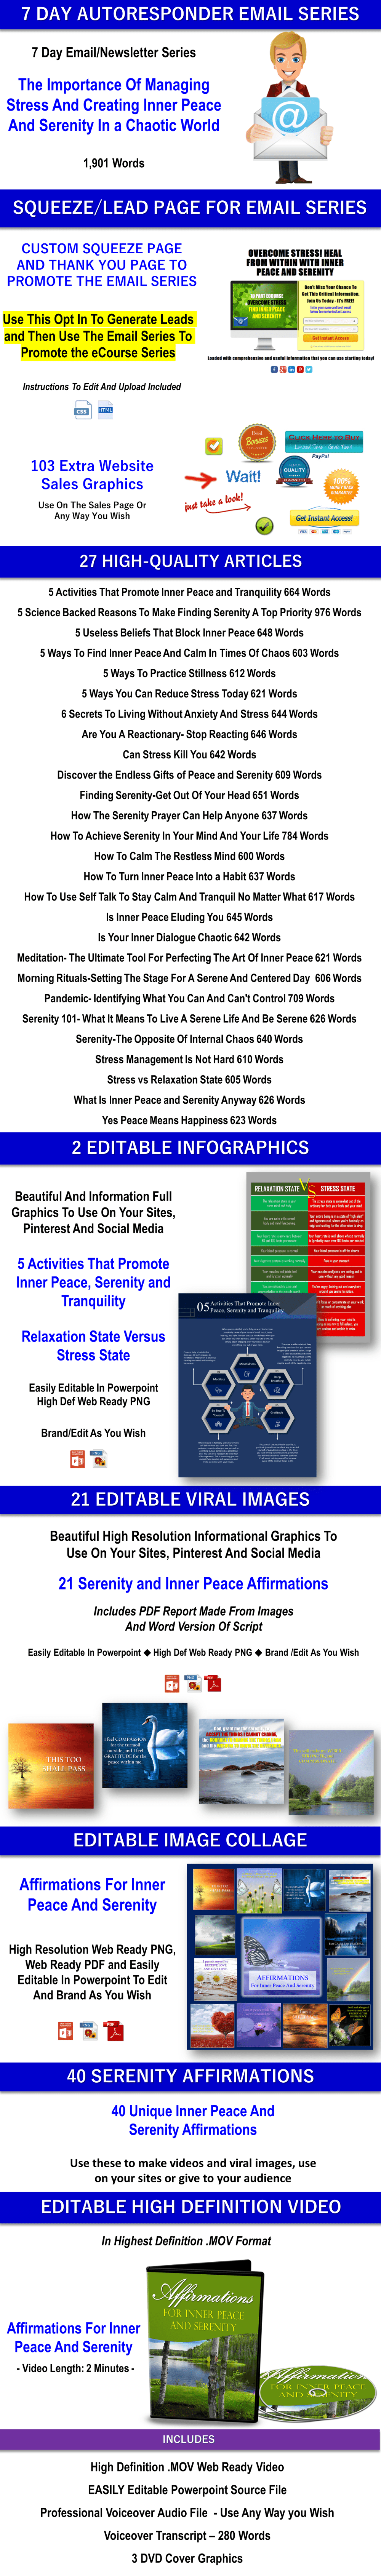 10 Part eCourse: Combat Stress - Find Inner Peace & Serenity Giant Content Pack Private Label Rights